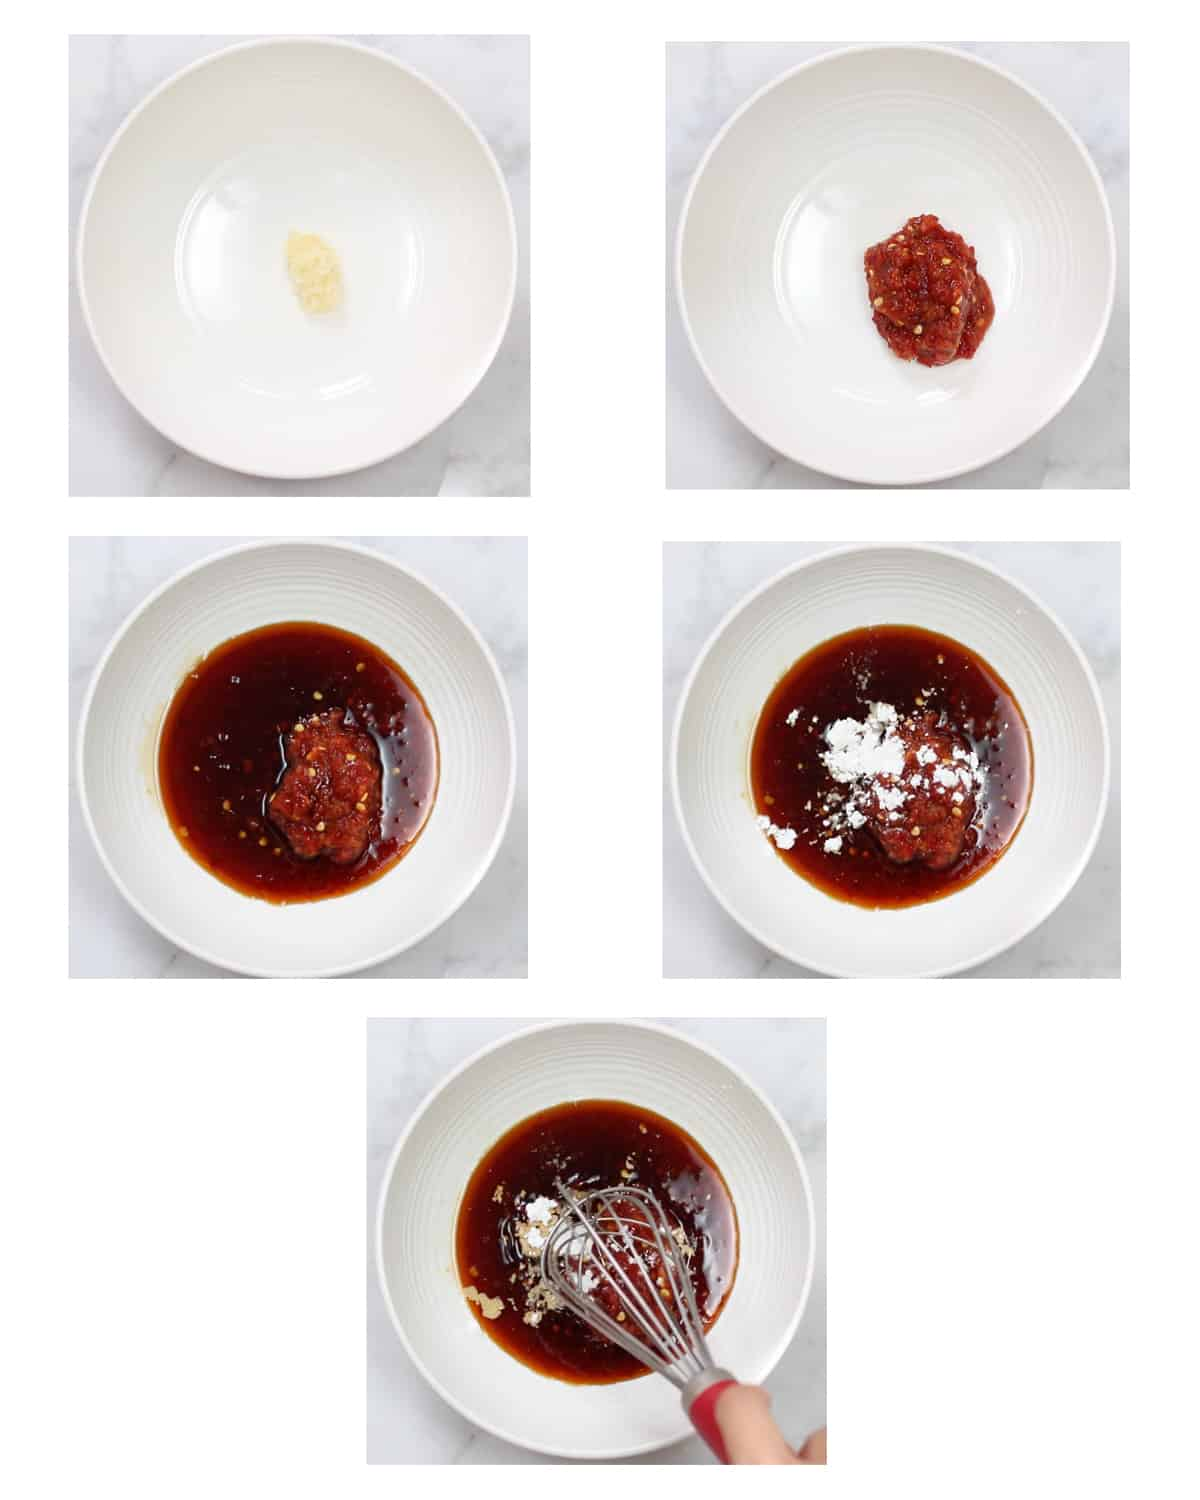 step by step photos showing all chili garlic sauce ingredients being added together and whisked